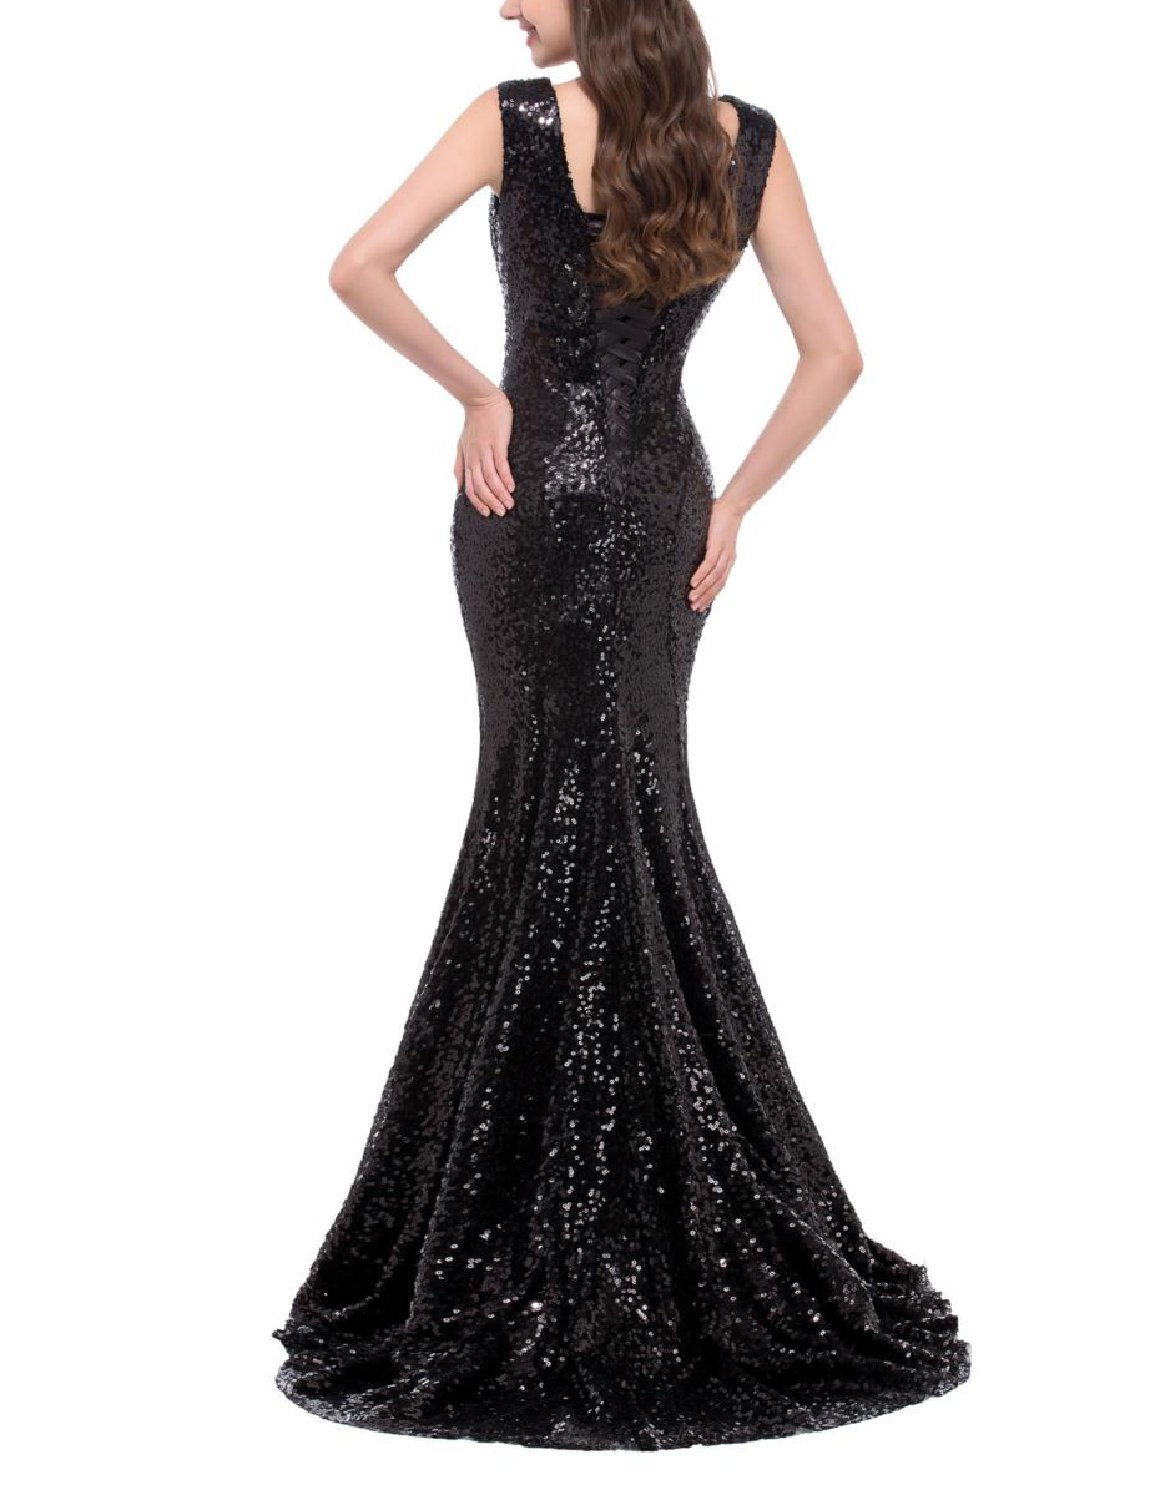 Women's Sexy V Neck Long Evening Party Dress Mermaid Sequins Prom Formal Gown